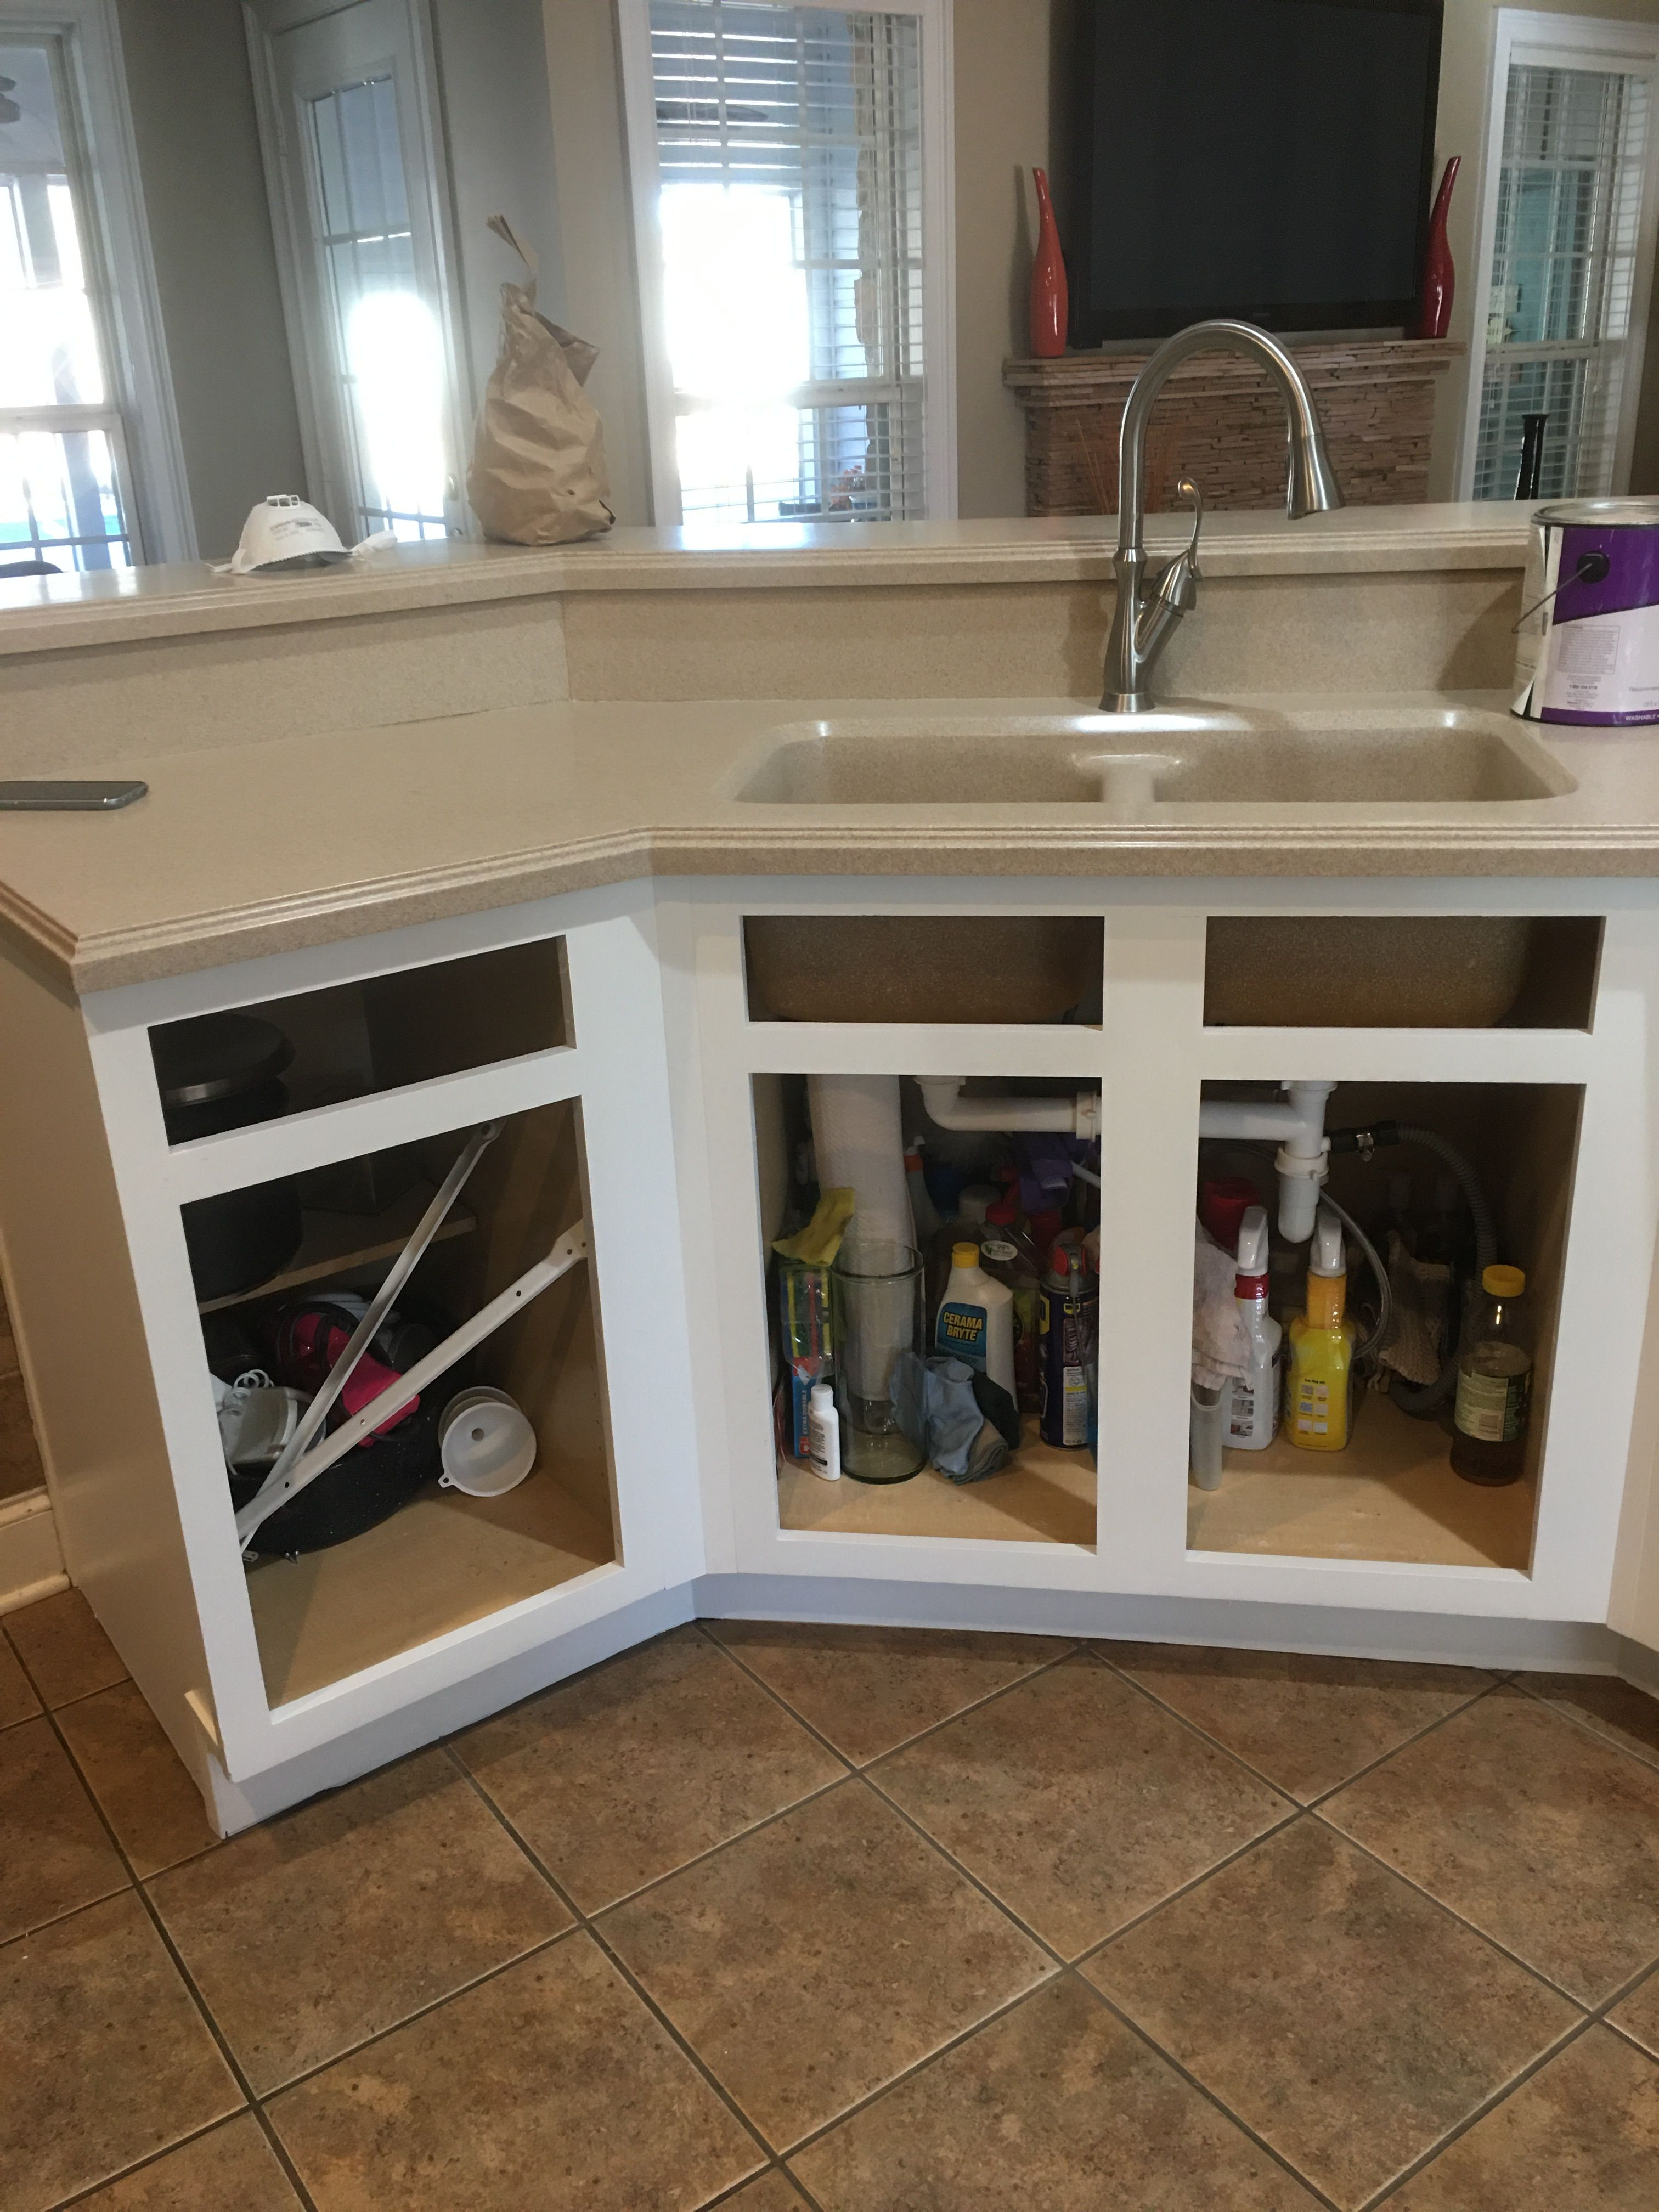 Give Your Old Cabinets A Makeover And Change The Entire Look Of Your Kitchen With Just A Fr In 2020 Refinishing Cabinets Old Kitchen Cabinets Painting Kitchen Cabinets